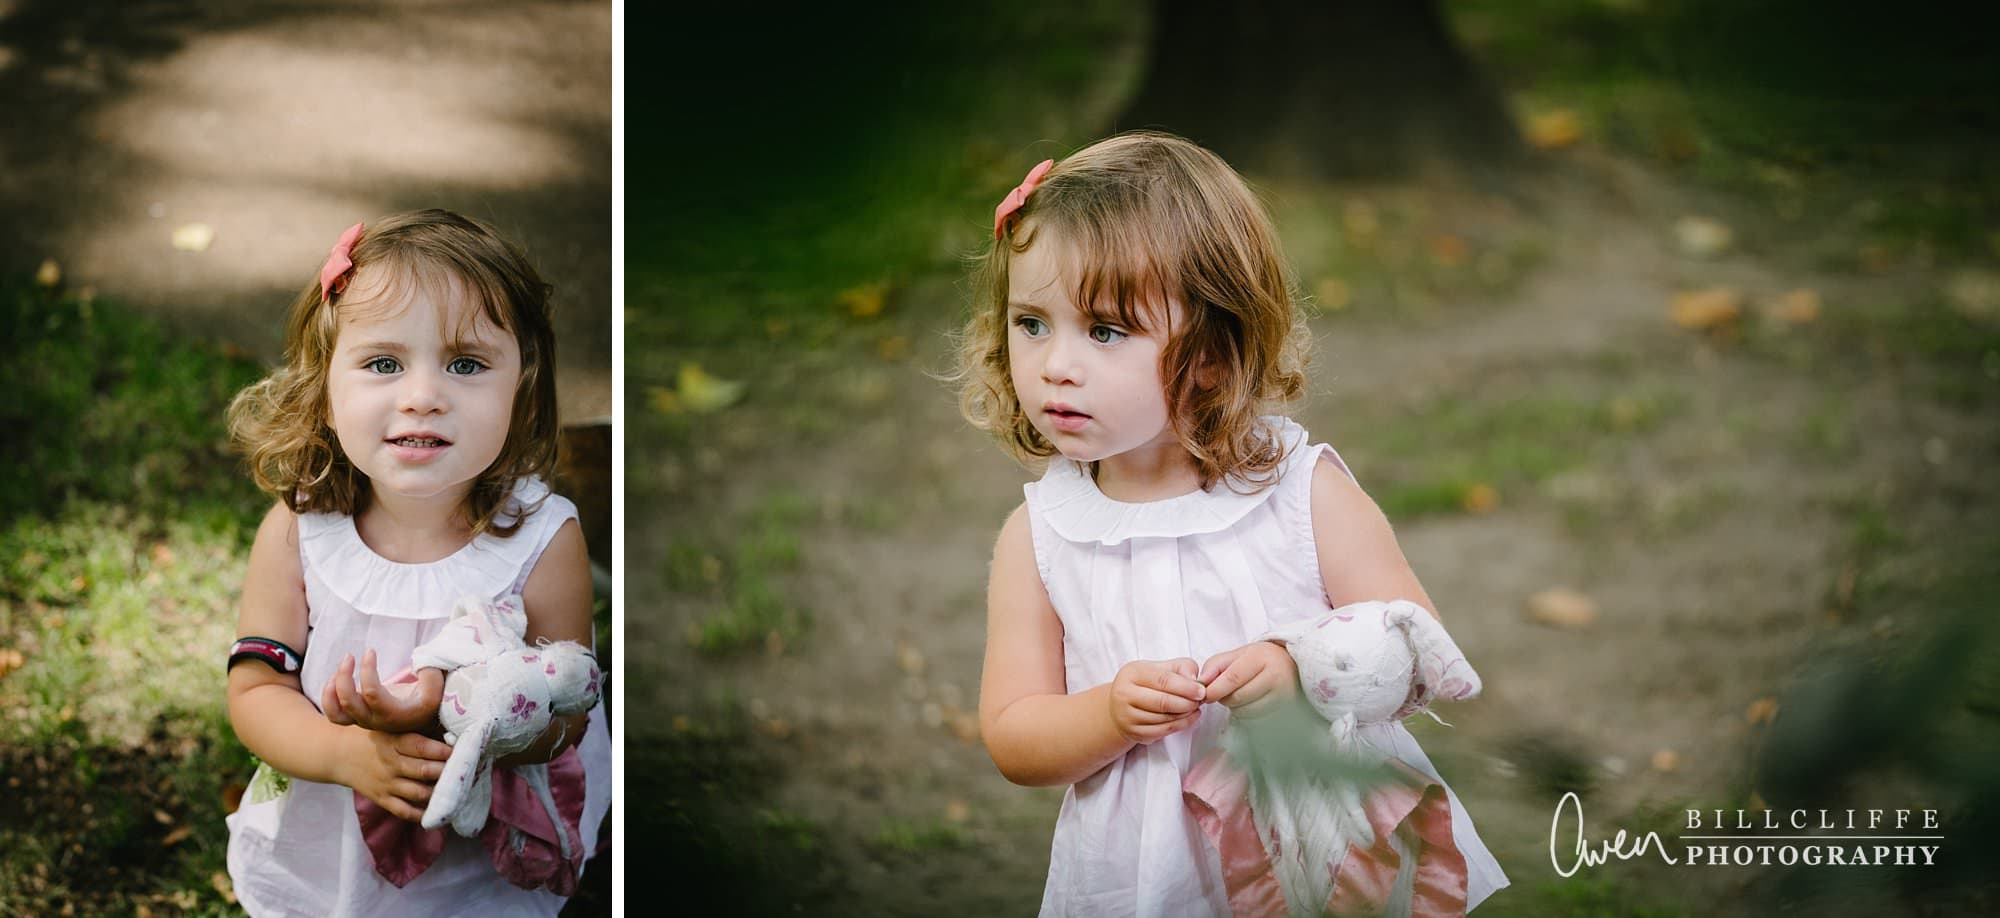 london family photographer london belgravia w1 012 - Belgravia Family Photography | The W Family